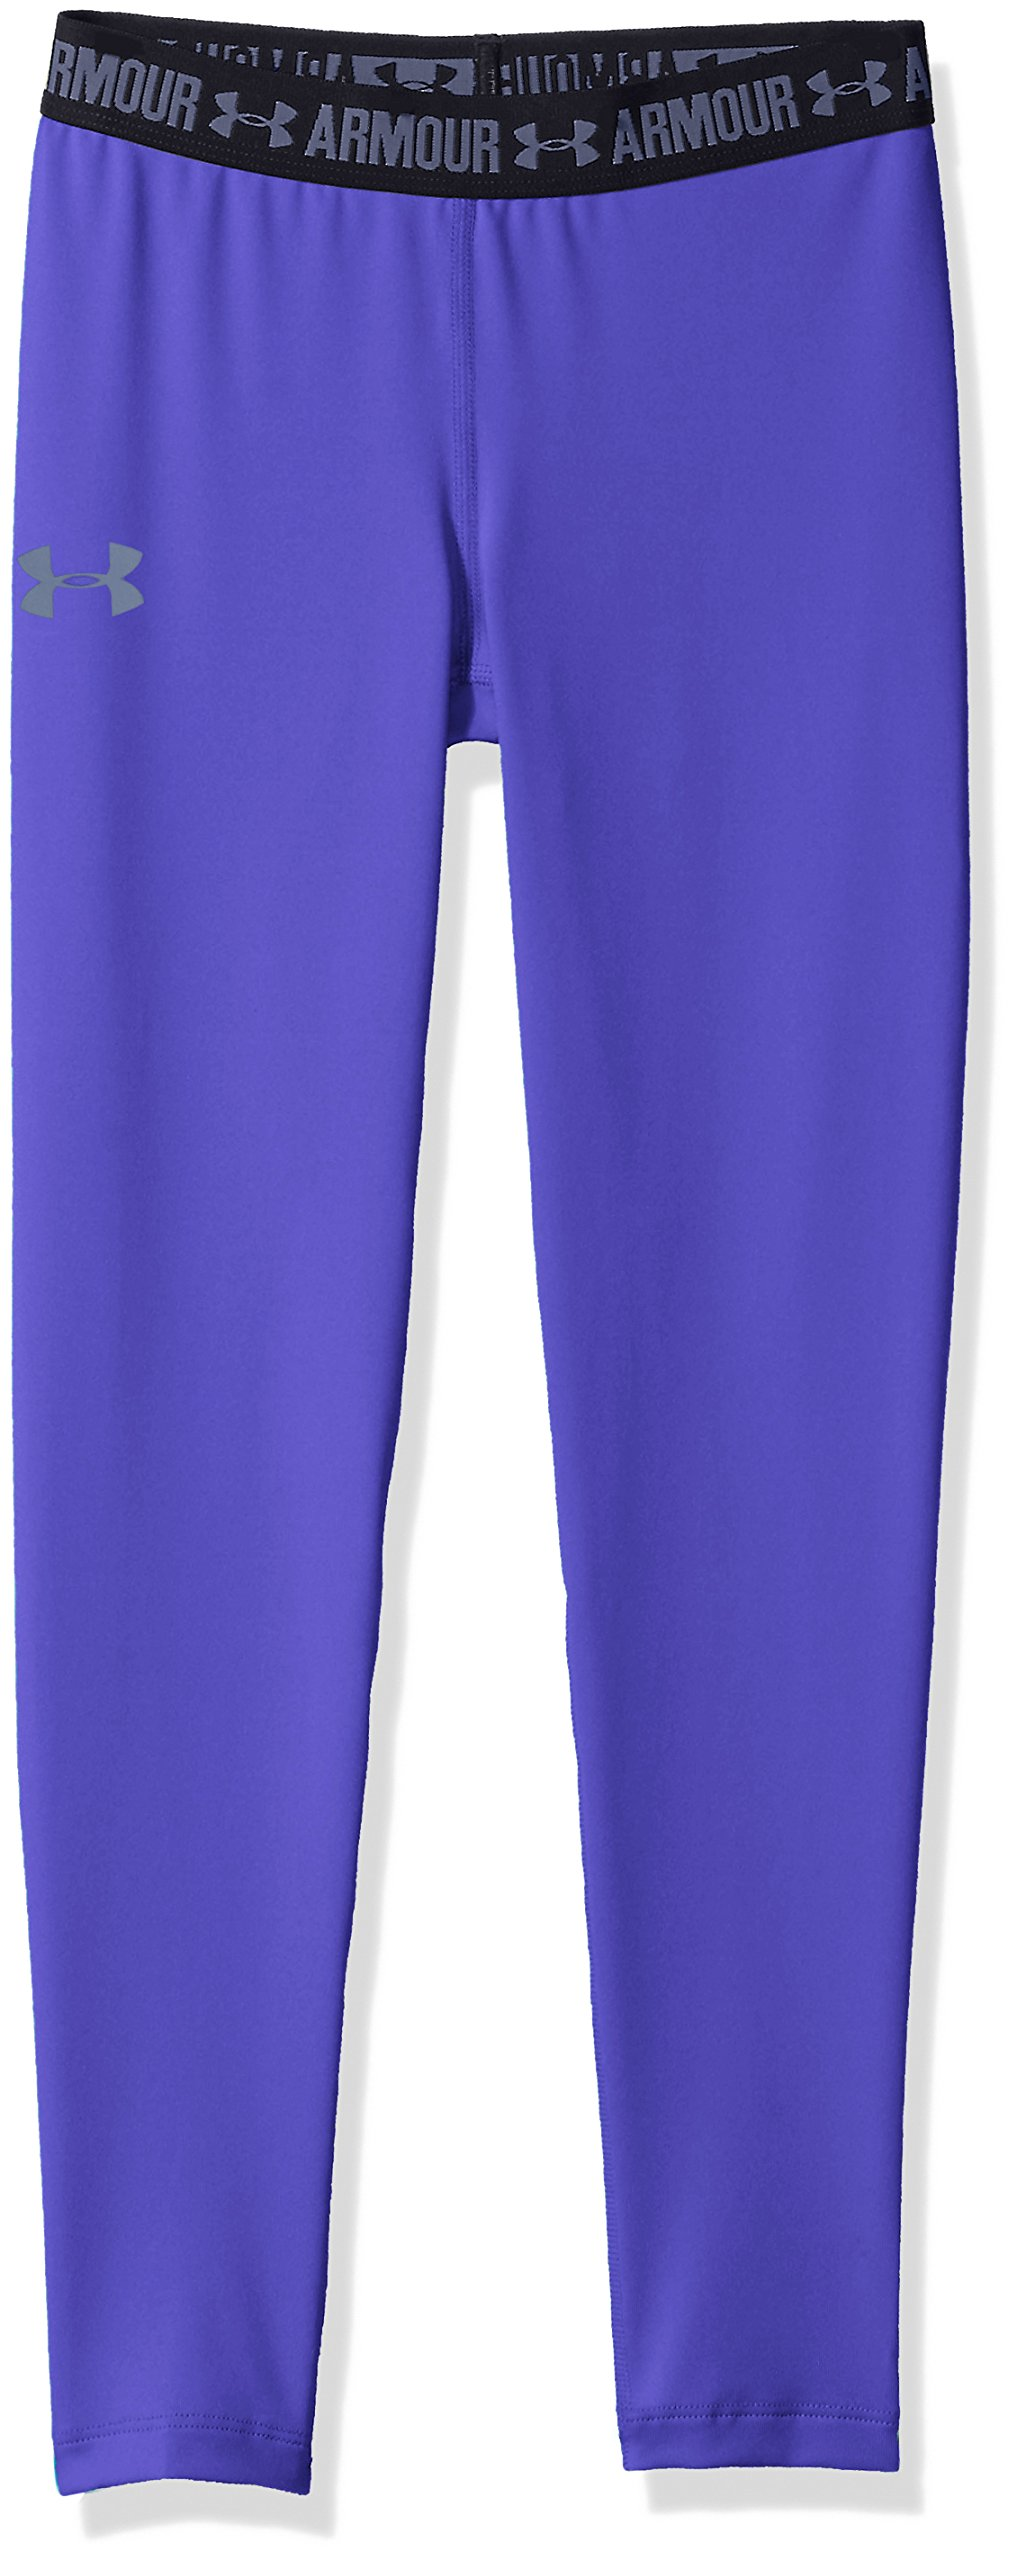 Under Armour Girls' HeatGear Armour Legging,Constellation Purple /Apollo Gray, Youth X-Large by Under Armour